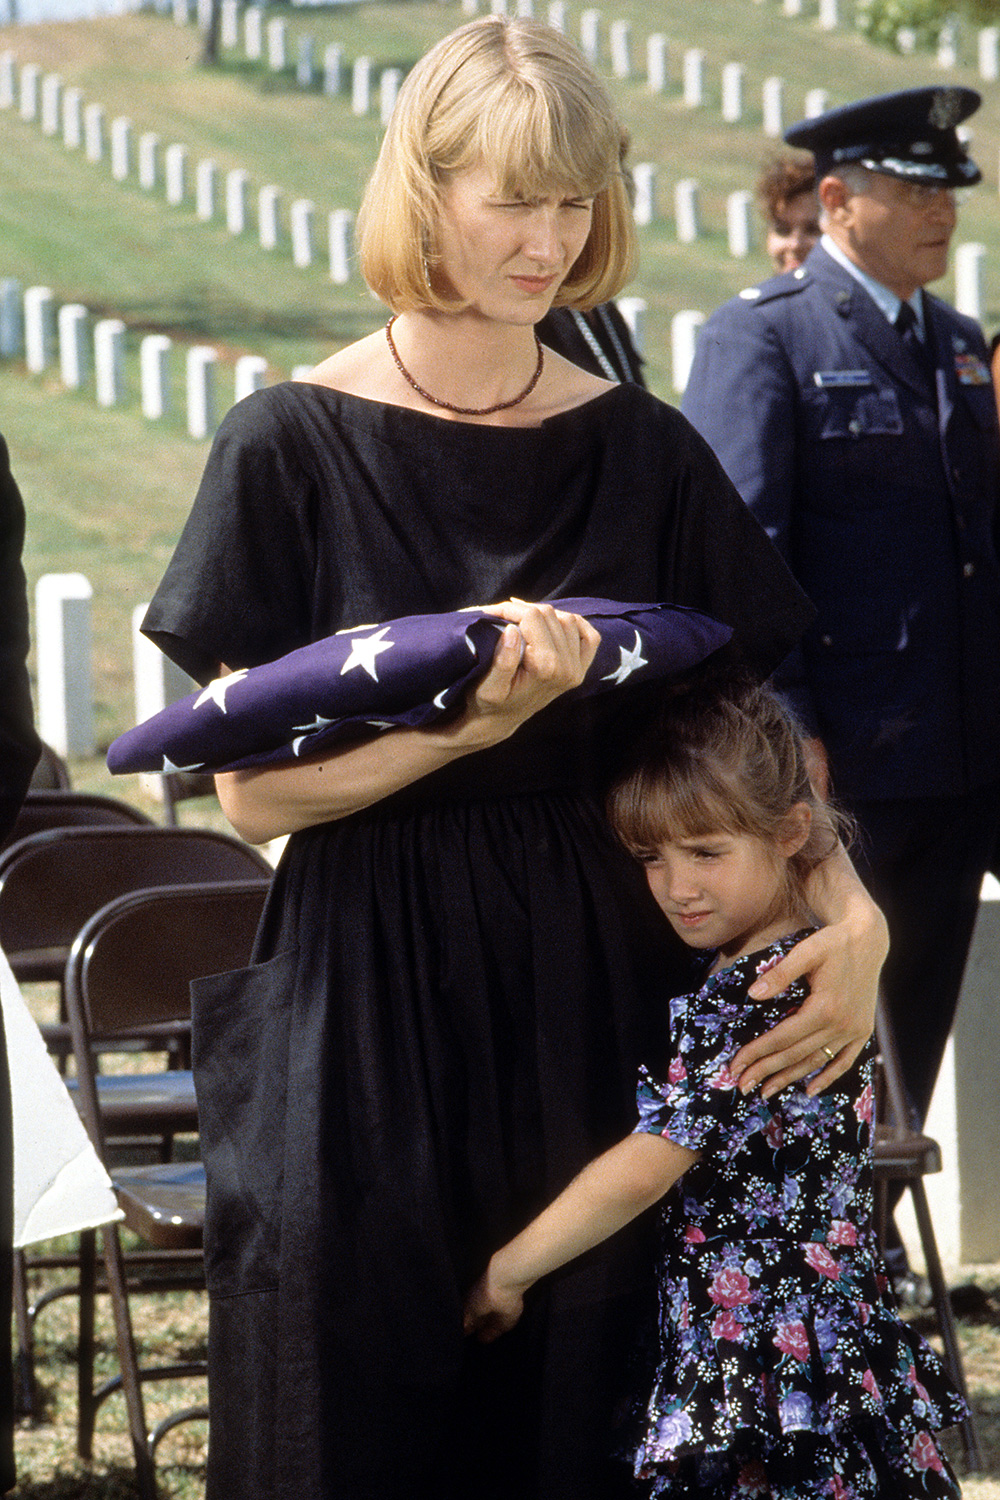 Laura Dern with child at funeral in a scene from the TV Movie 'Afterburn', 1992